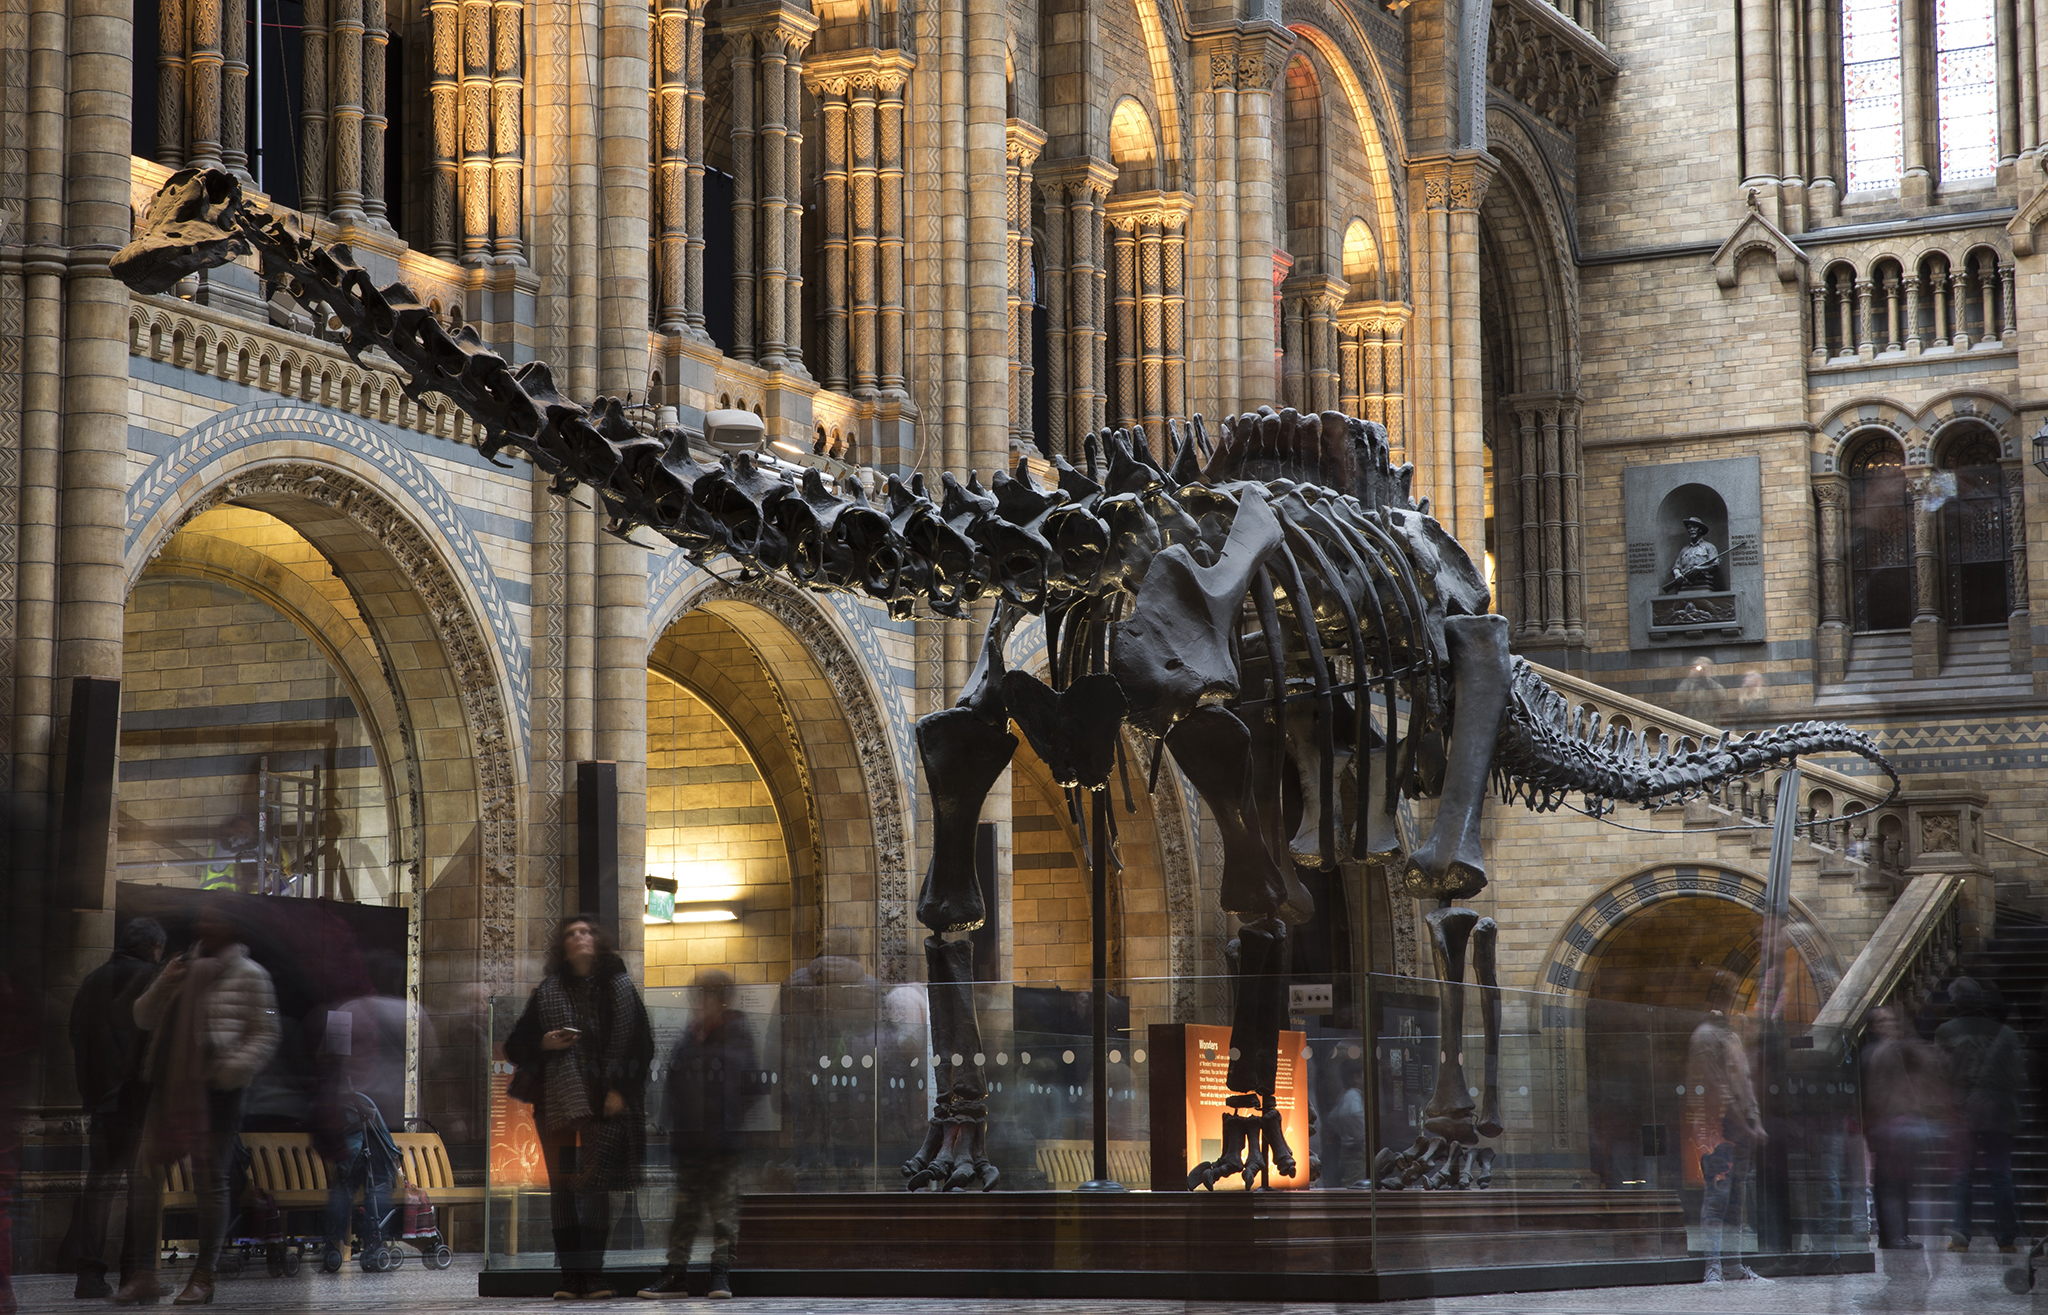 LONDON, ENGLAND - JANUARY 04:  Members of the public walk walk around 'Dippy' the Diplodocus at Natural History Museum on January 4, 2017 in London, England. The 70ft long (21.3m) plaster-cast sauropod replica, which is made up of 292 bones, is set to leave the Natural History Museum in London, where it has been for 109 years, before going on a national tour. Dippy will be replaced by an 83 foot long real skeleton of a Blue Whale, which will be hung from the ceiling.  (Photo by Dan Kitwood/Getty Images